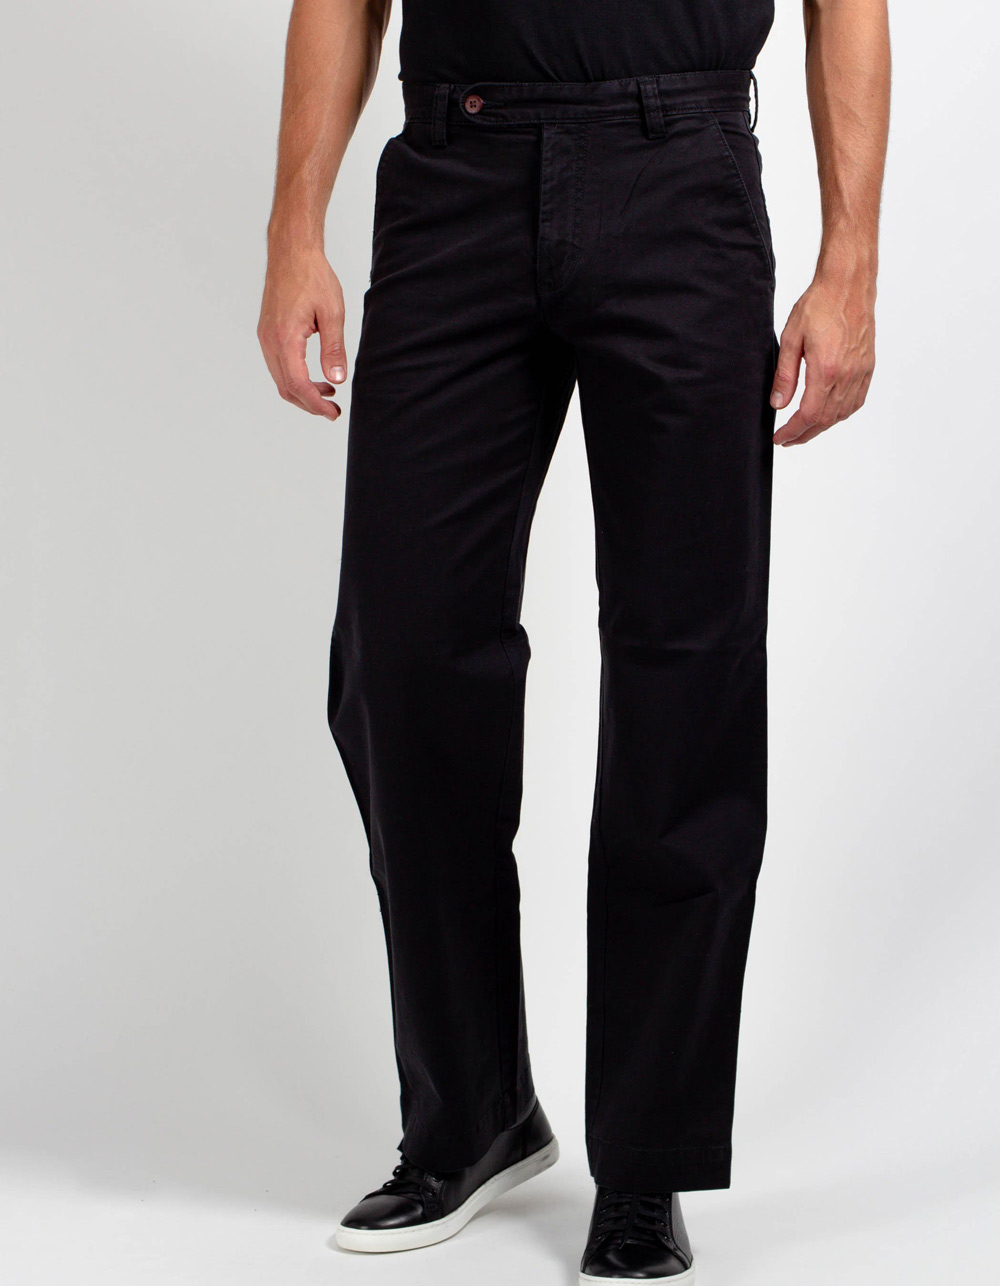 Black chinos trousers